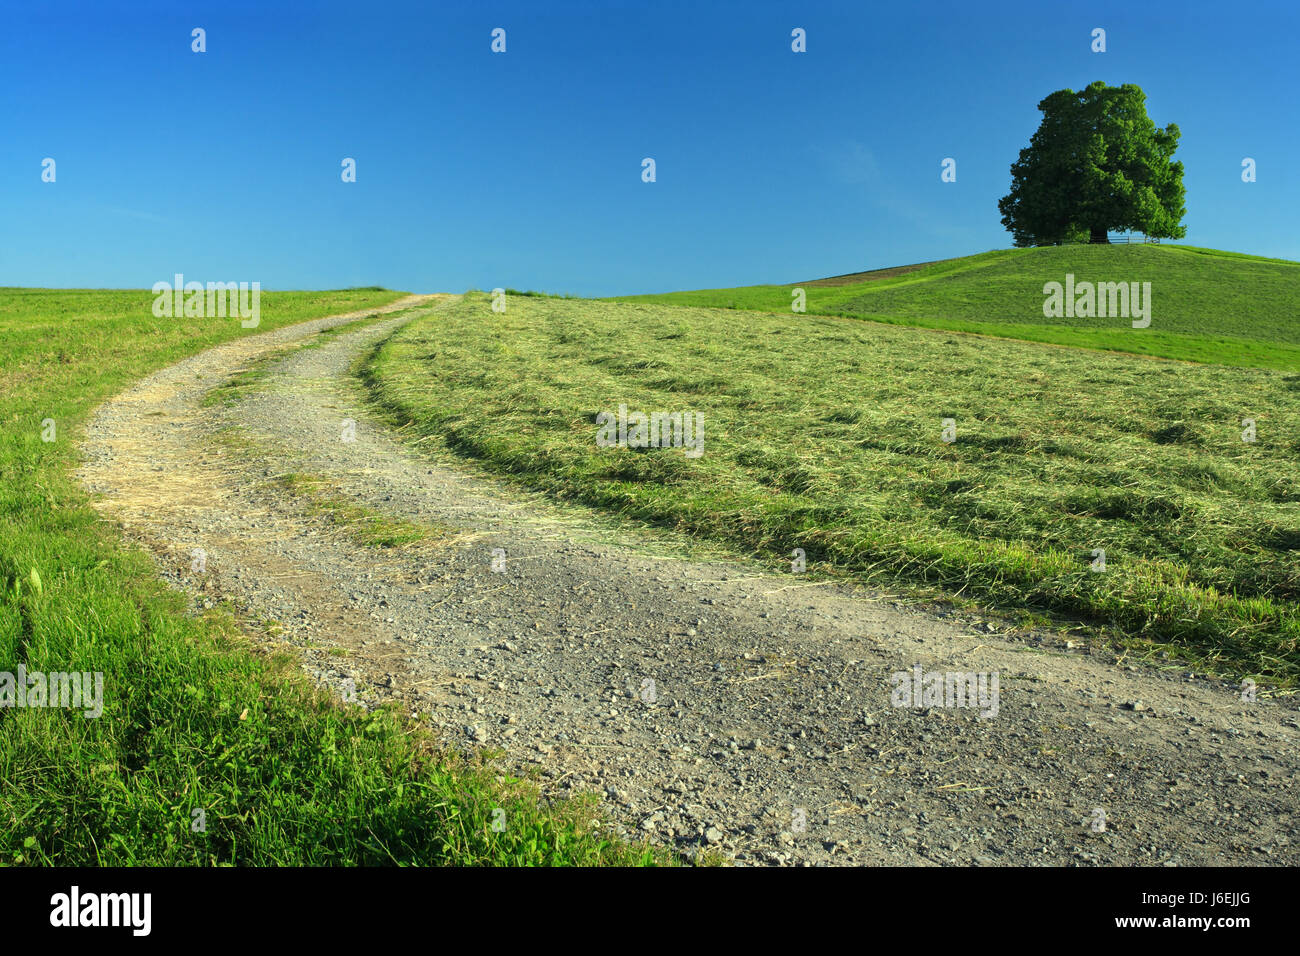 tree one country pasture landscape scenery countryside nature road meadow - Stock Image